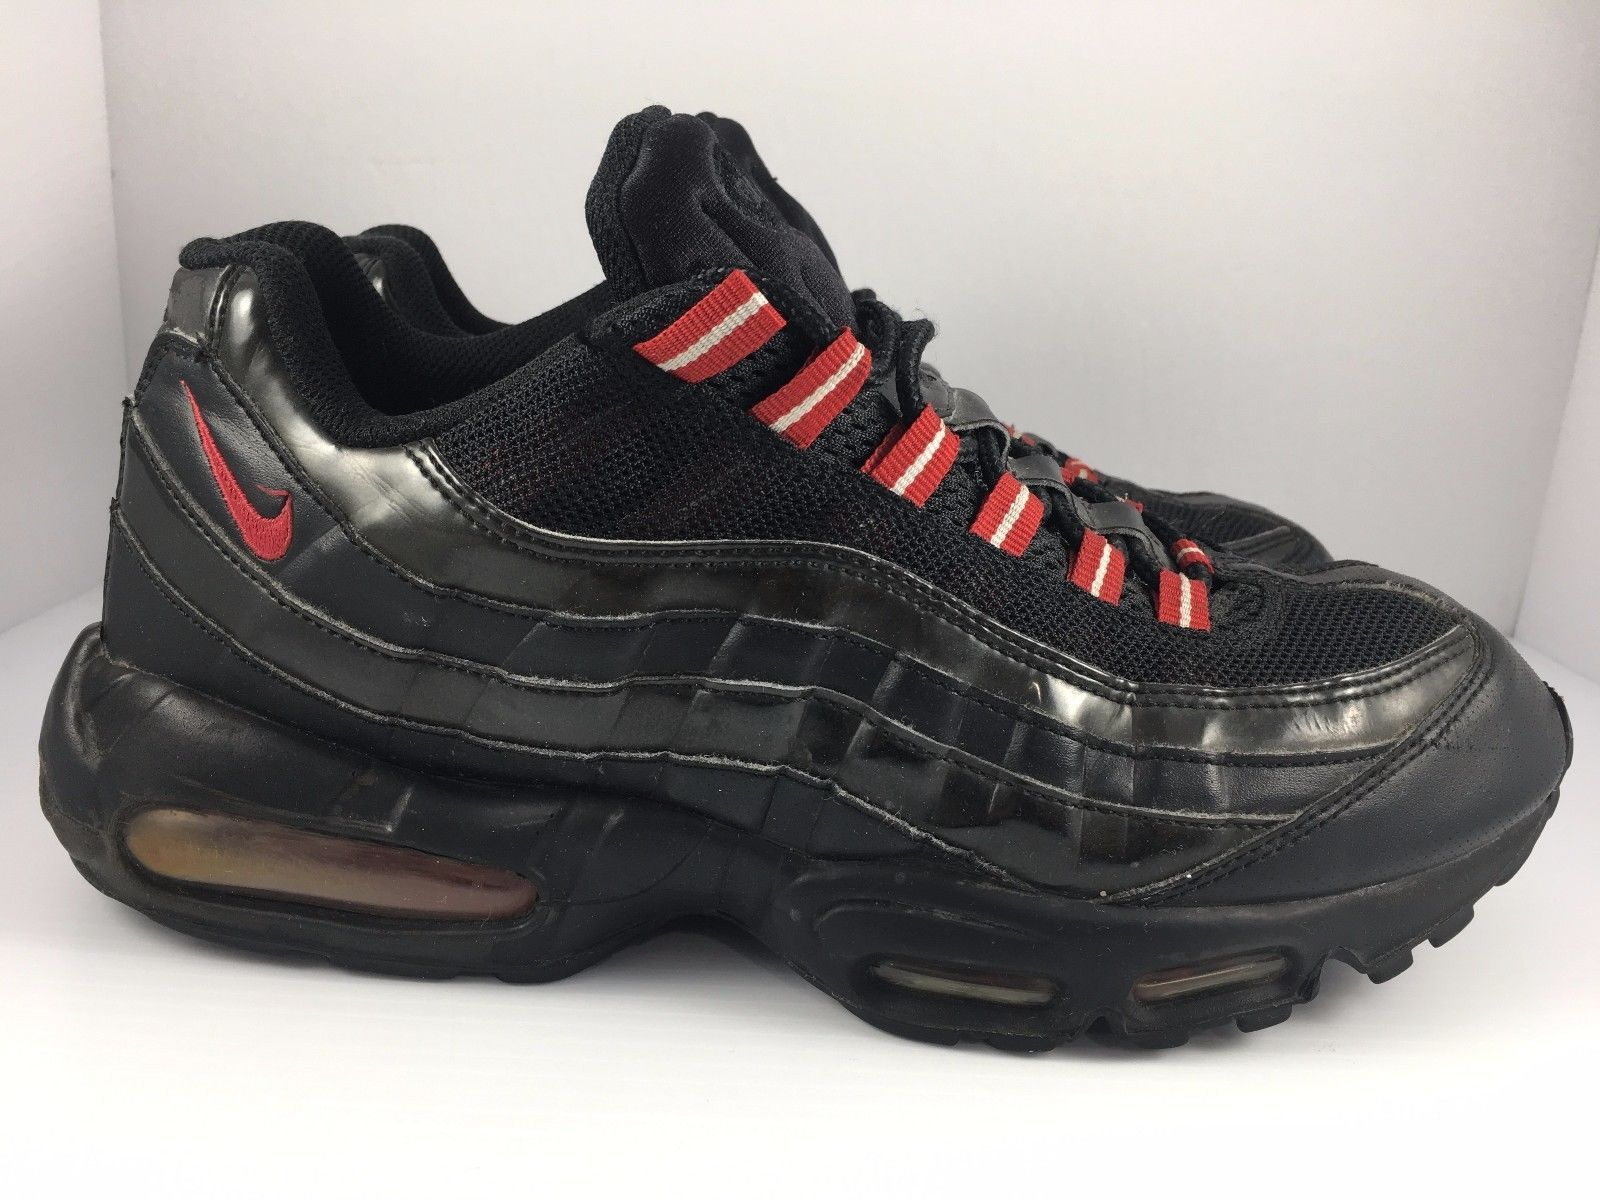 meet 00a59 16223 Nike Air Max 95 size 10.5 Black Patent Black + Varsity Red Sneakers  609048 -037